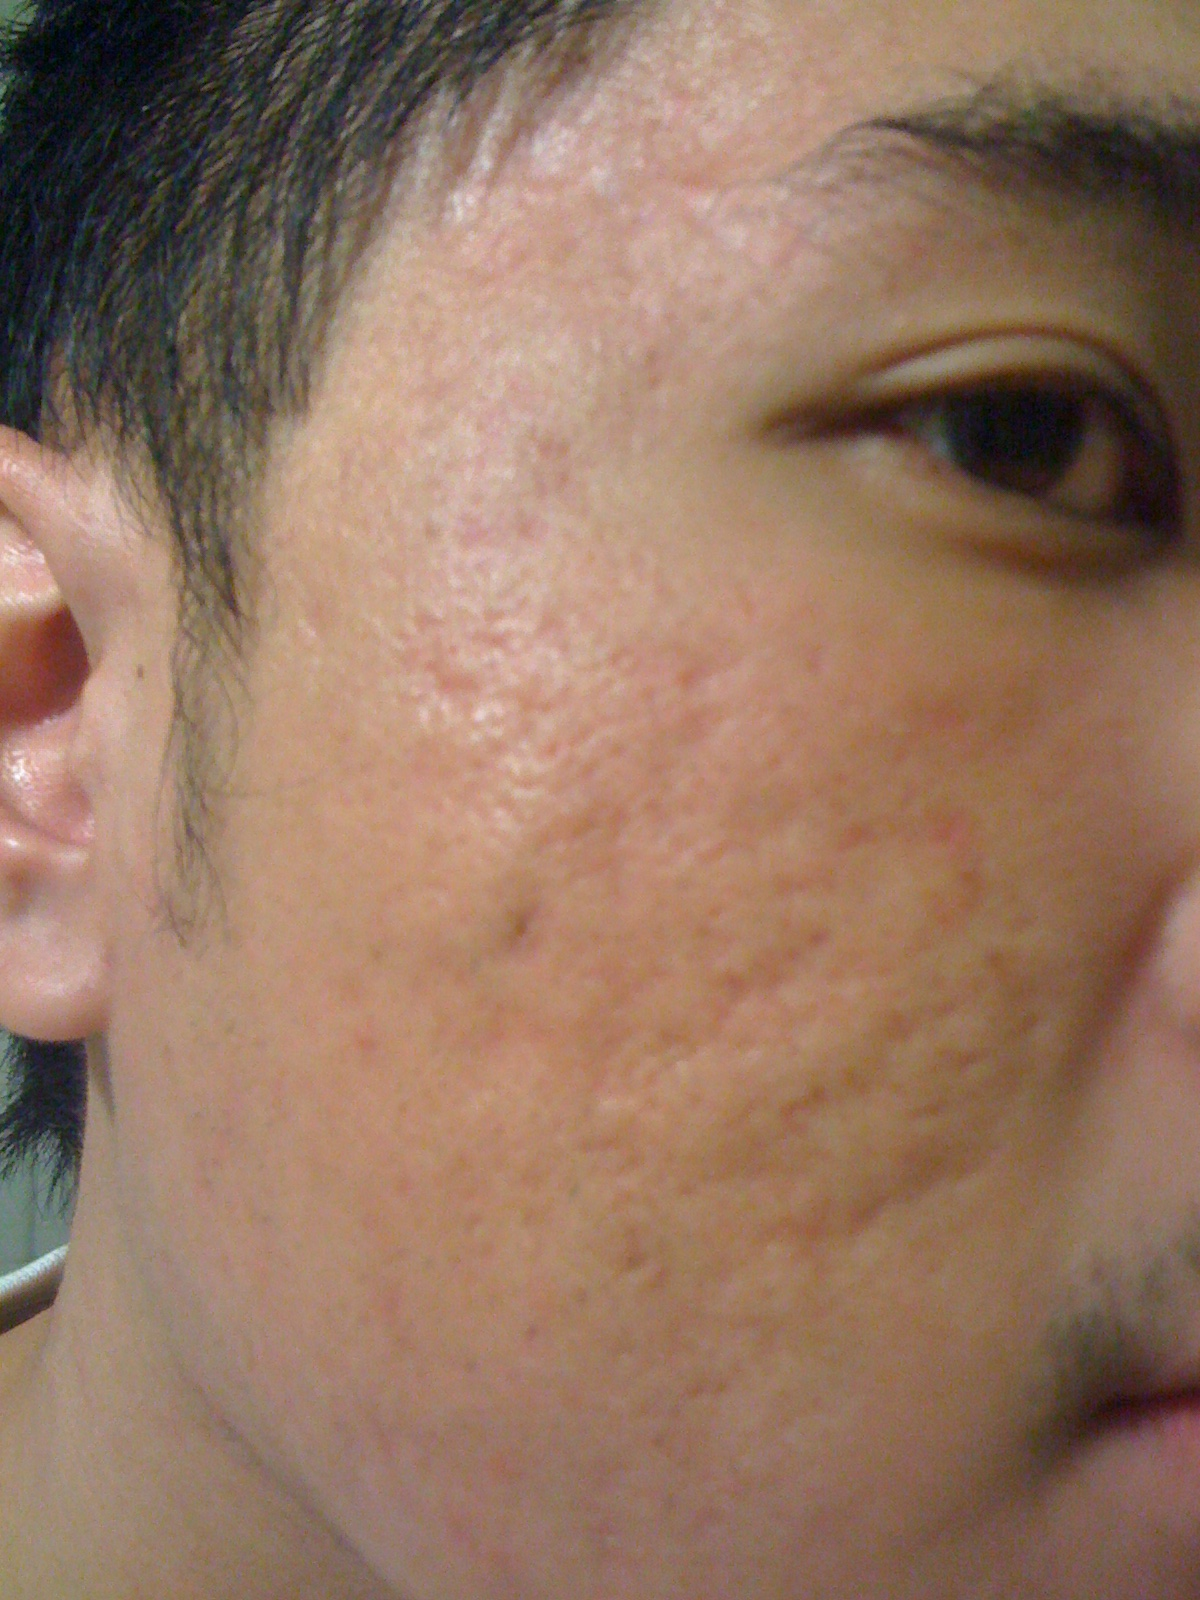 Severe Acne Scars Treatment hello, Is this ...